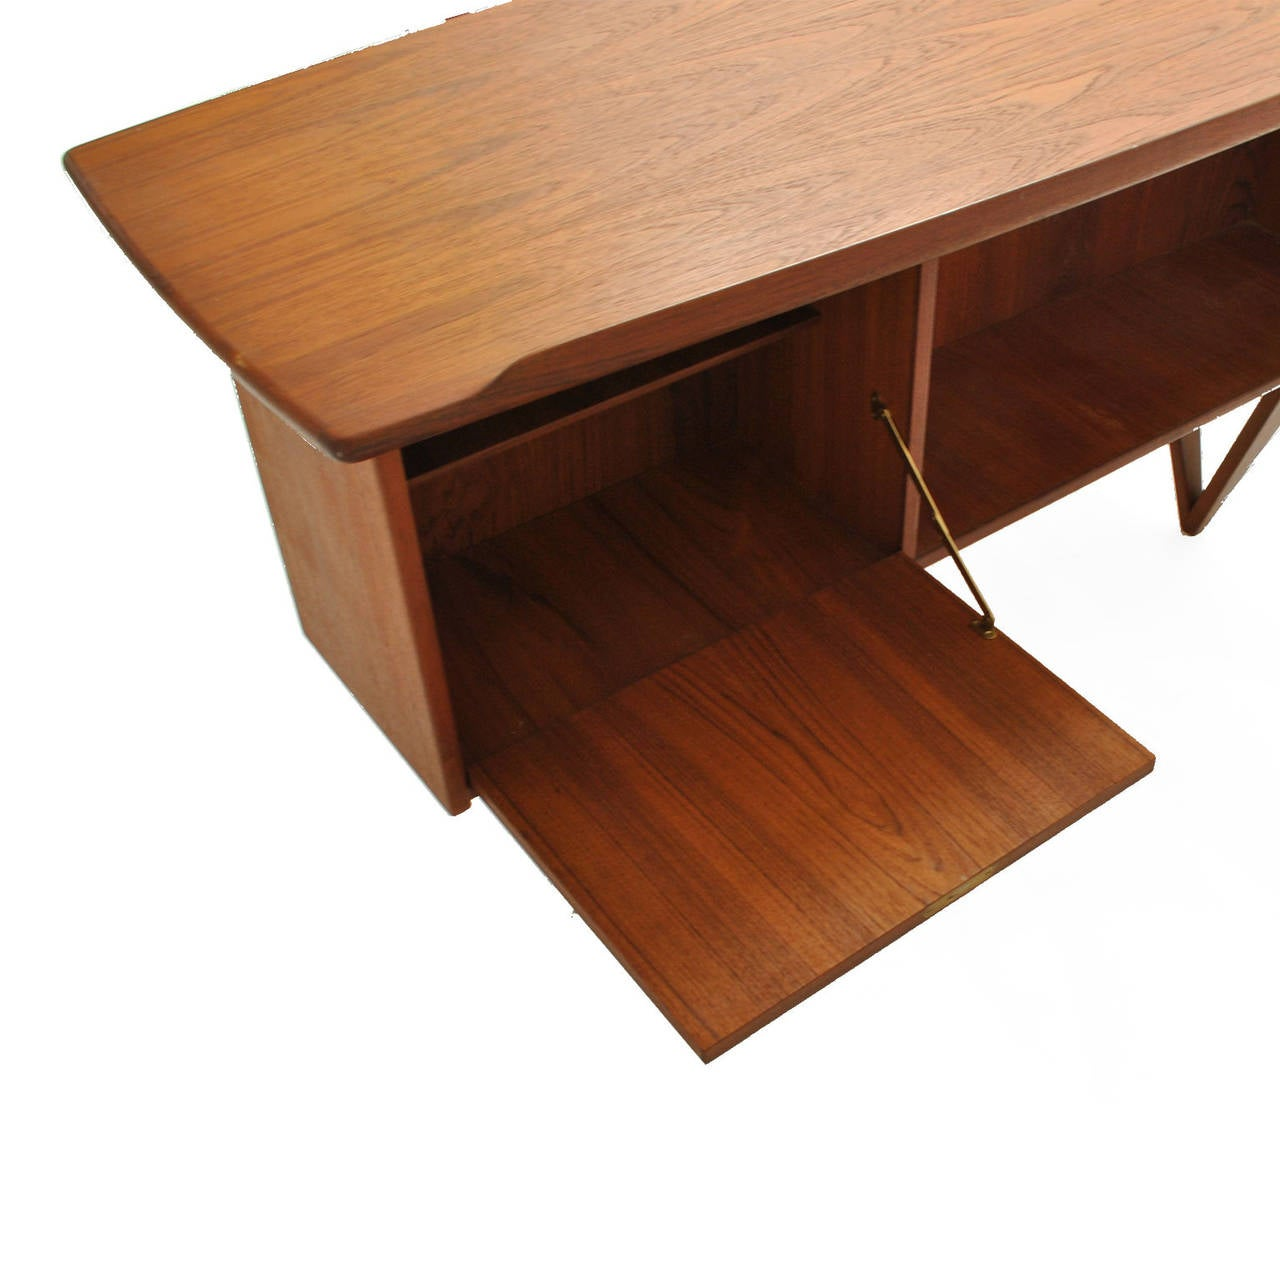 Mid-20th Century Boomerang Table Desk by Peter Løvig Nielsen For Sale